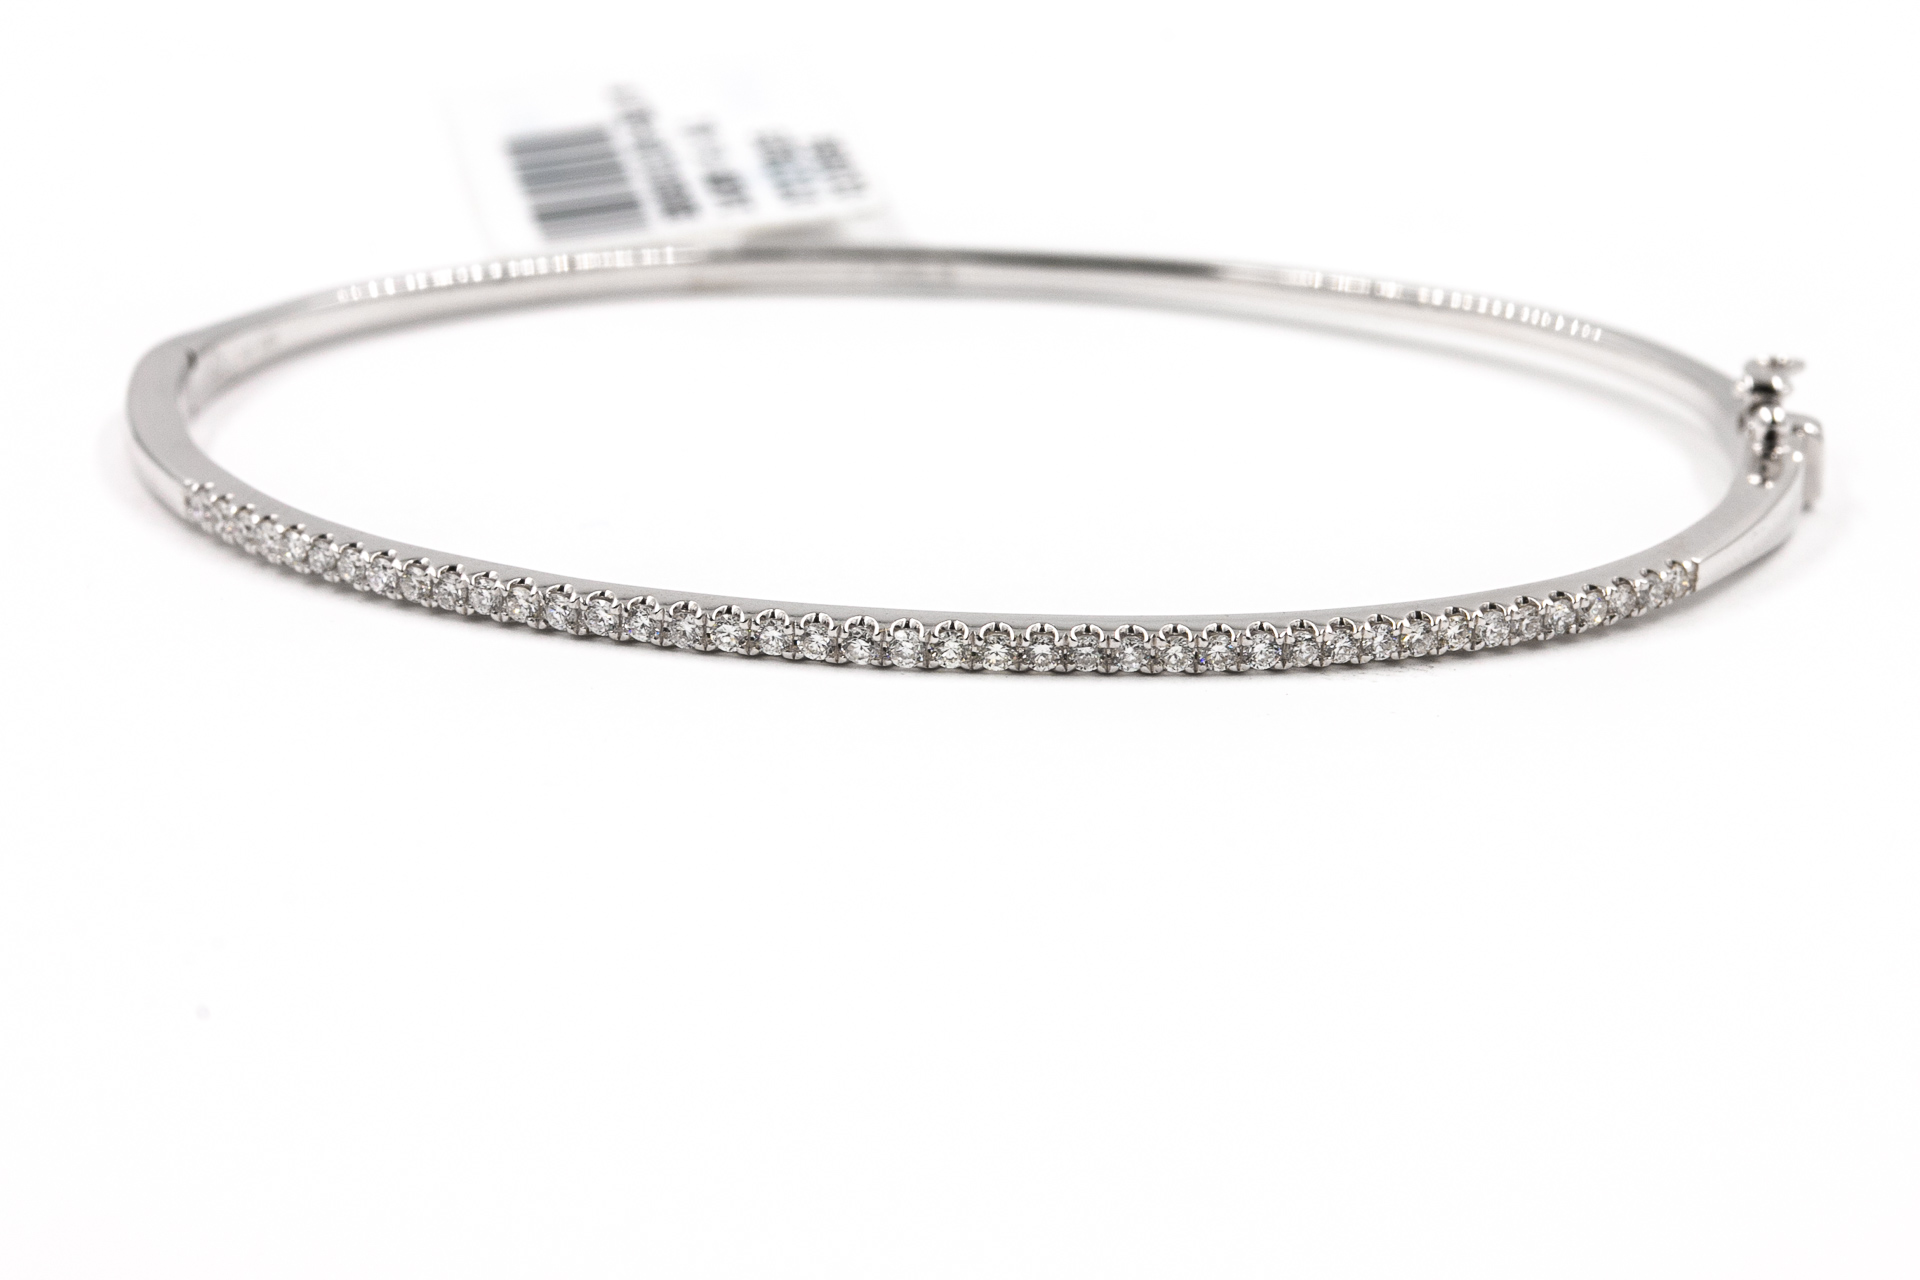 diamond-bracelet-jewelry-sale-